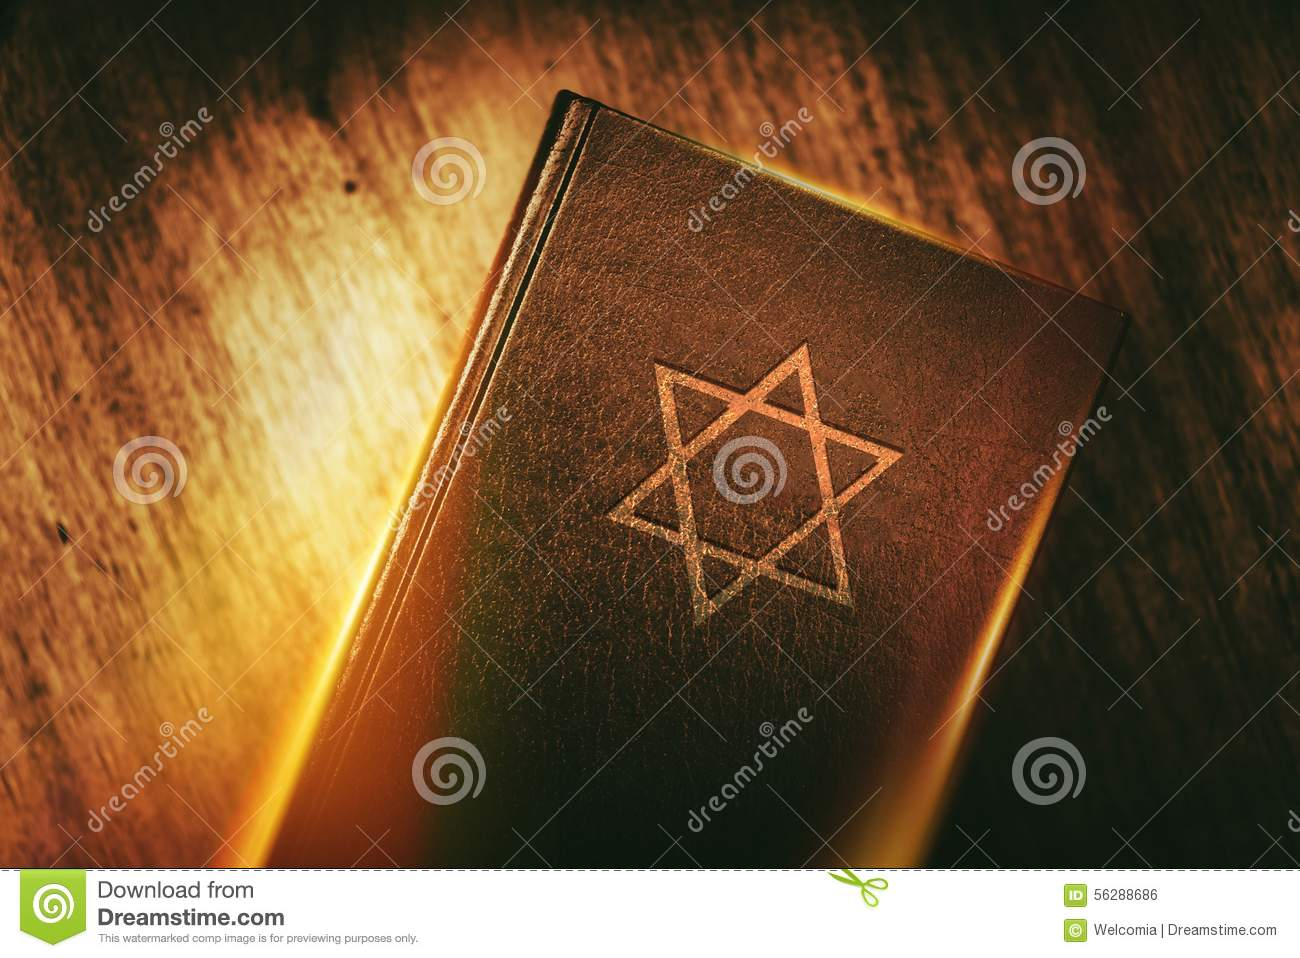 Vintage Leather Look Jeremiah Verse Bible Book Cover Large: The Book Of Judaism Stock Photo. Image Of Torah, Praying